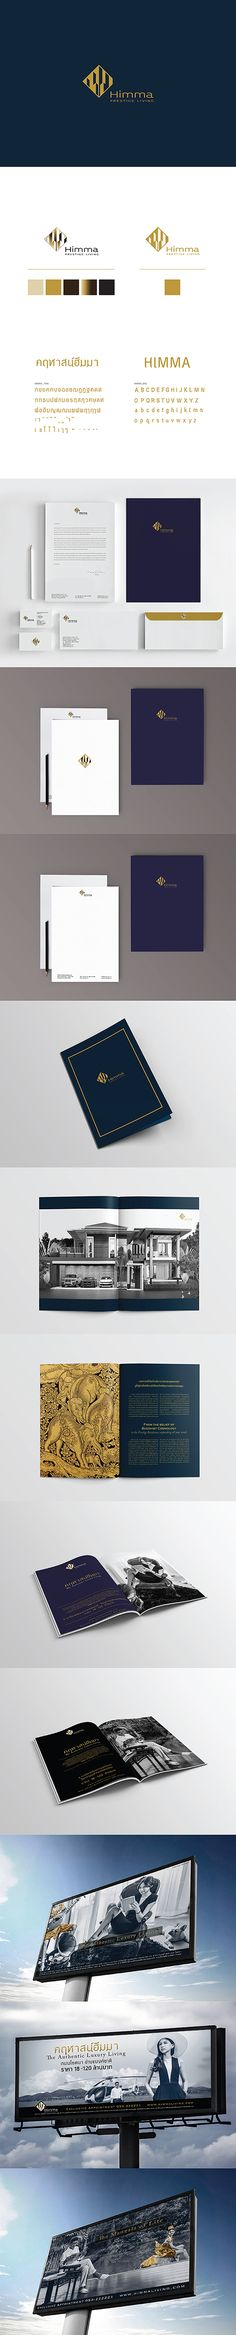 Himma Prestige Living  CI Real estate corporate identity Billboard design Brochure design Leaflet Stationary Letter Envelope Chiangmai Thailand